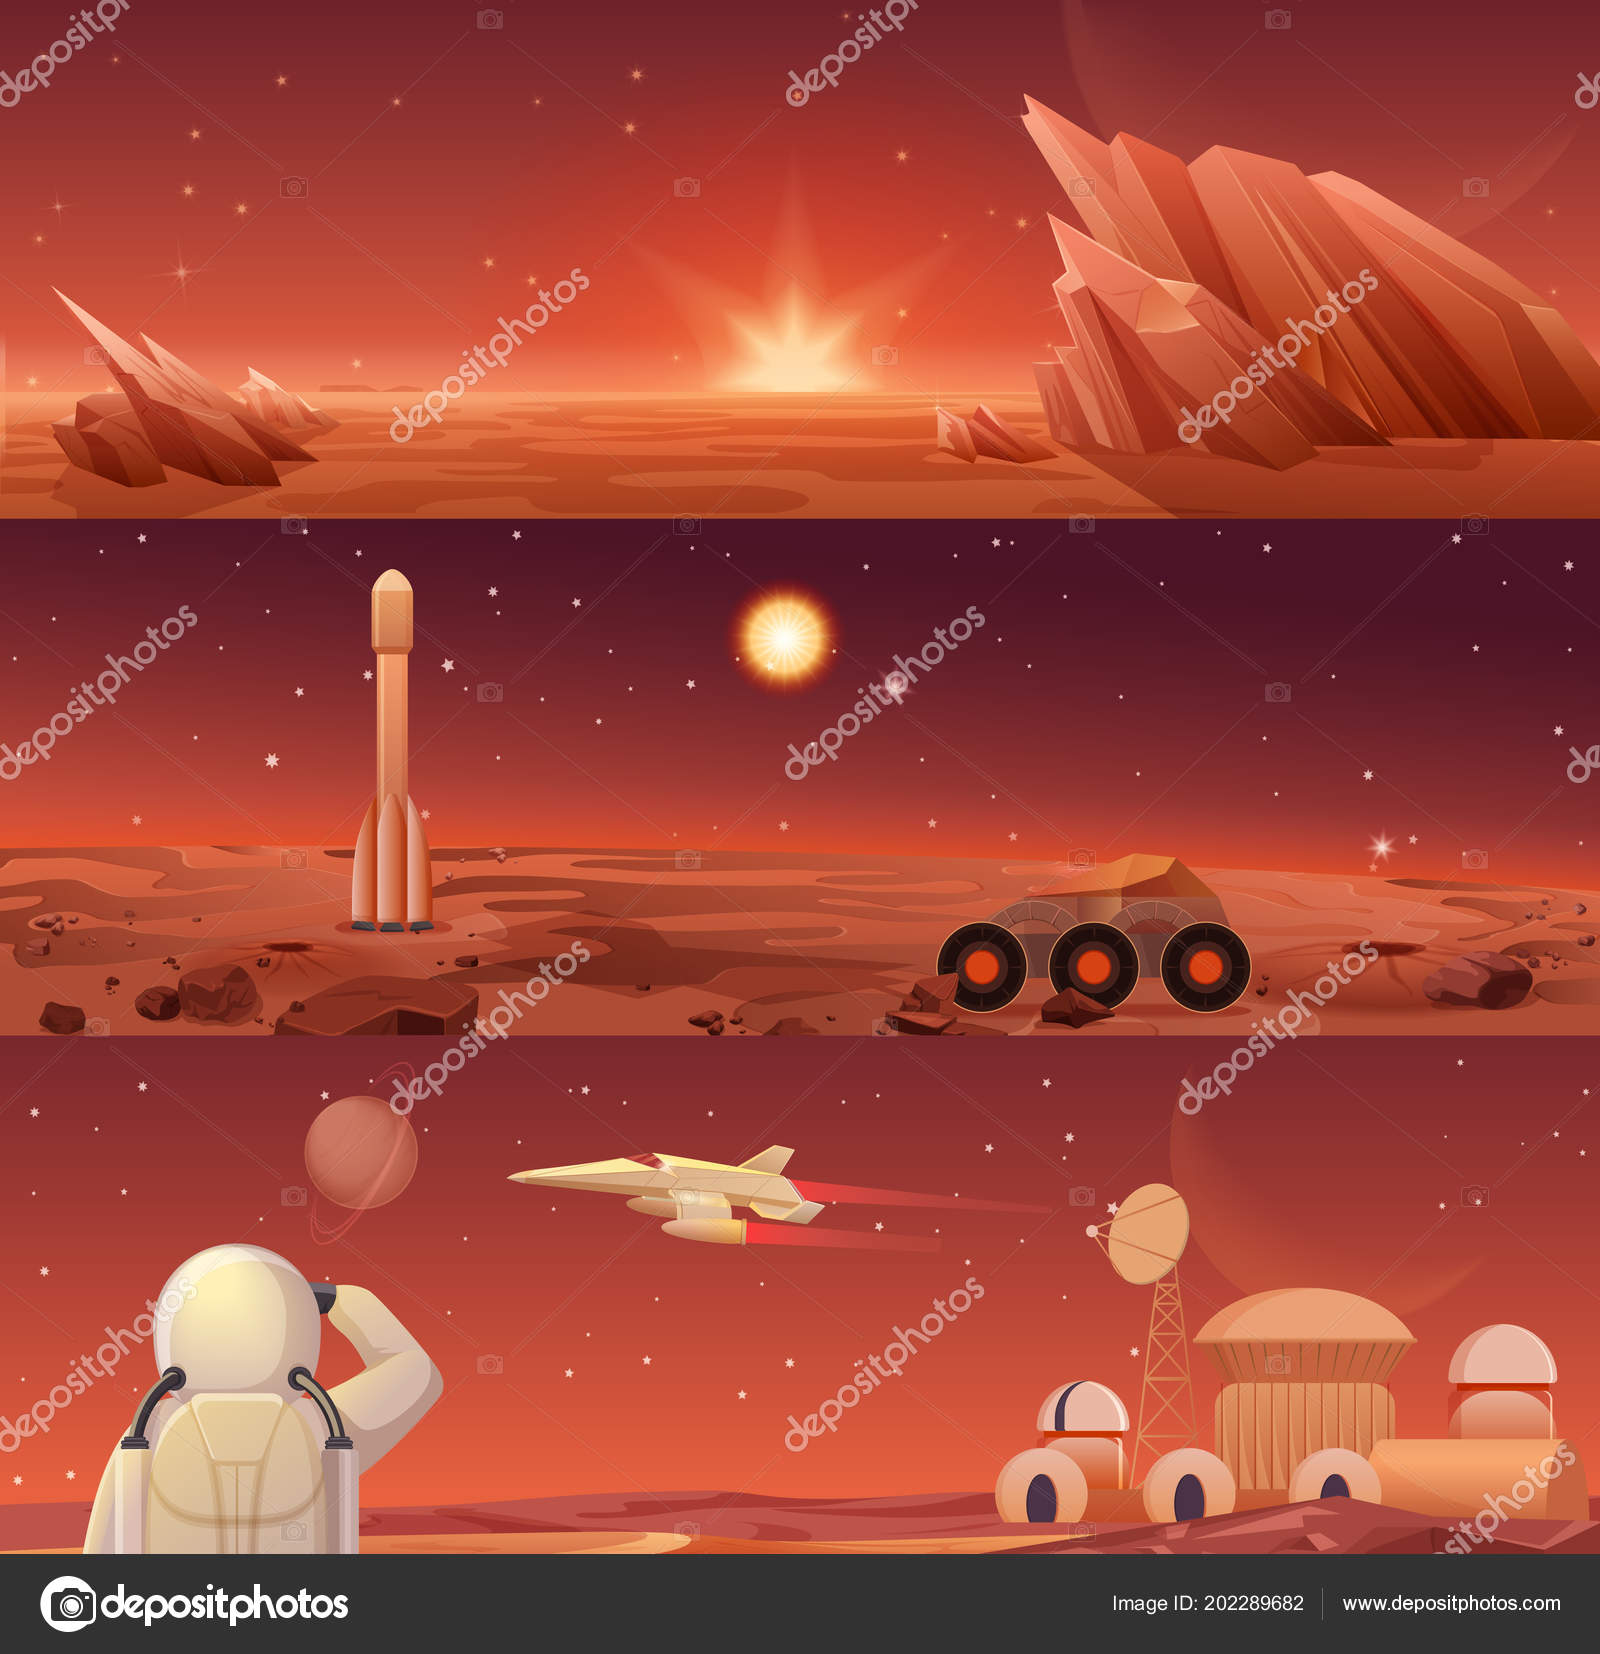 Red planet Mars colonization and exploration  Galaxy Mars landascape